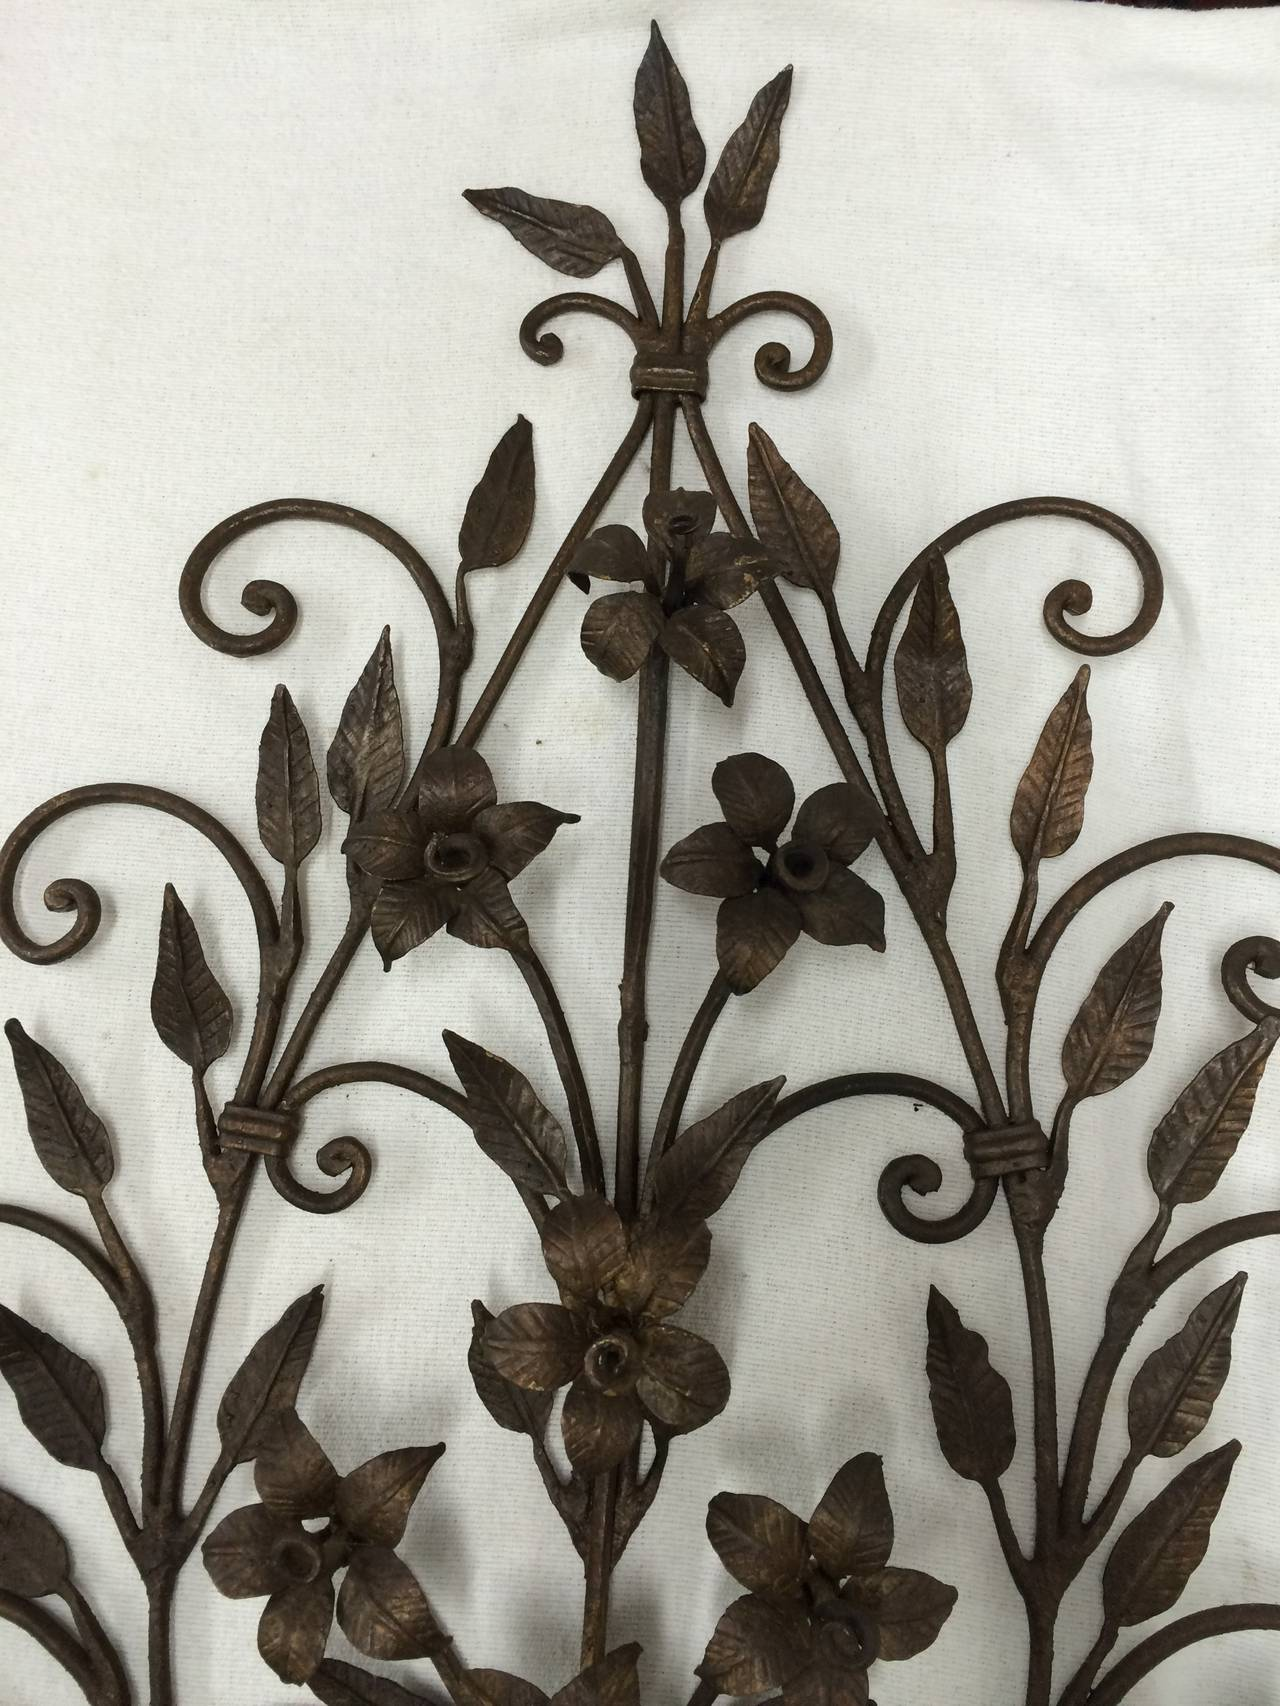 Wrought Iron Wall Decor Flowers : Pair of hand wrought iron floral wall sconces for sale at